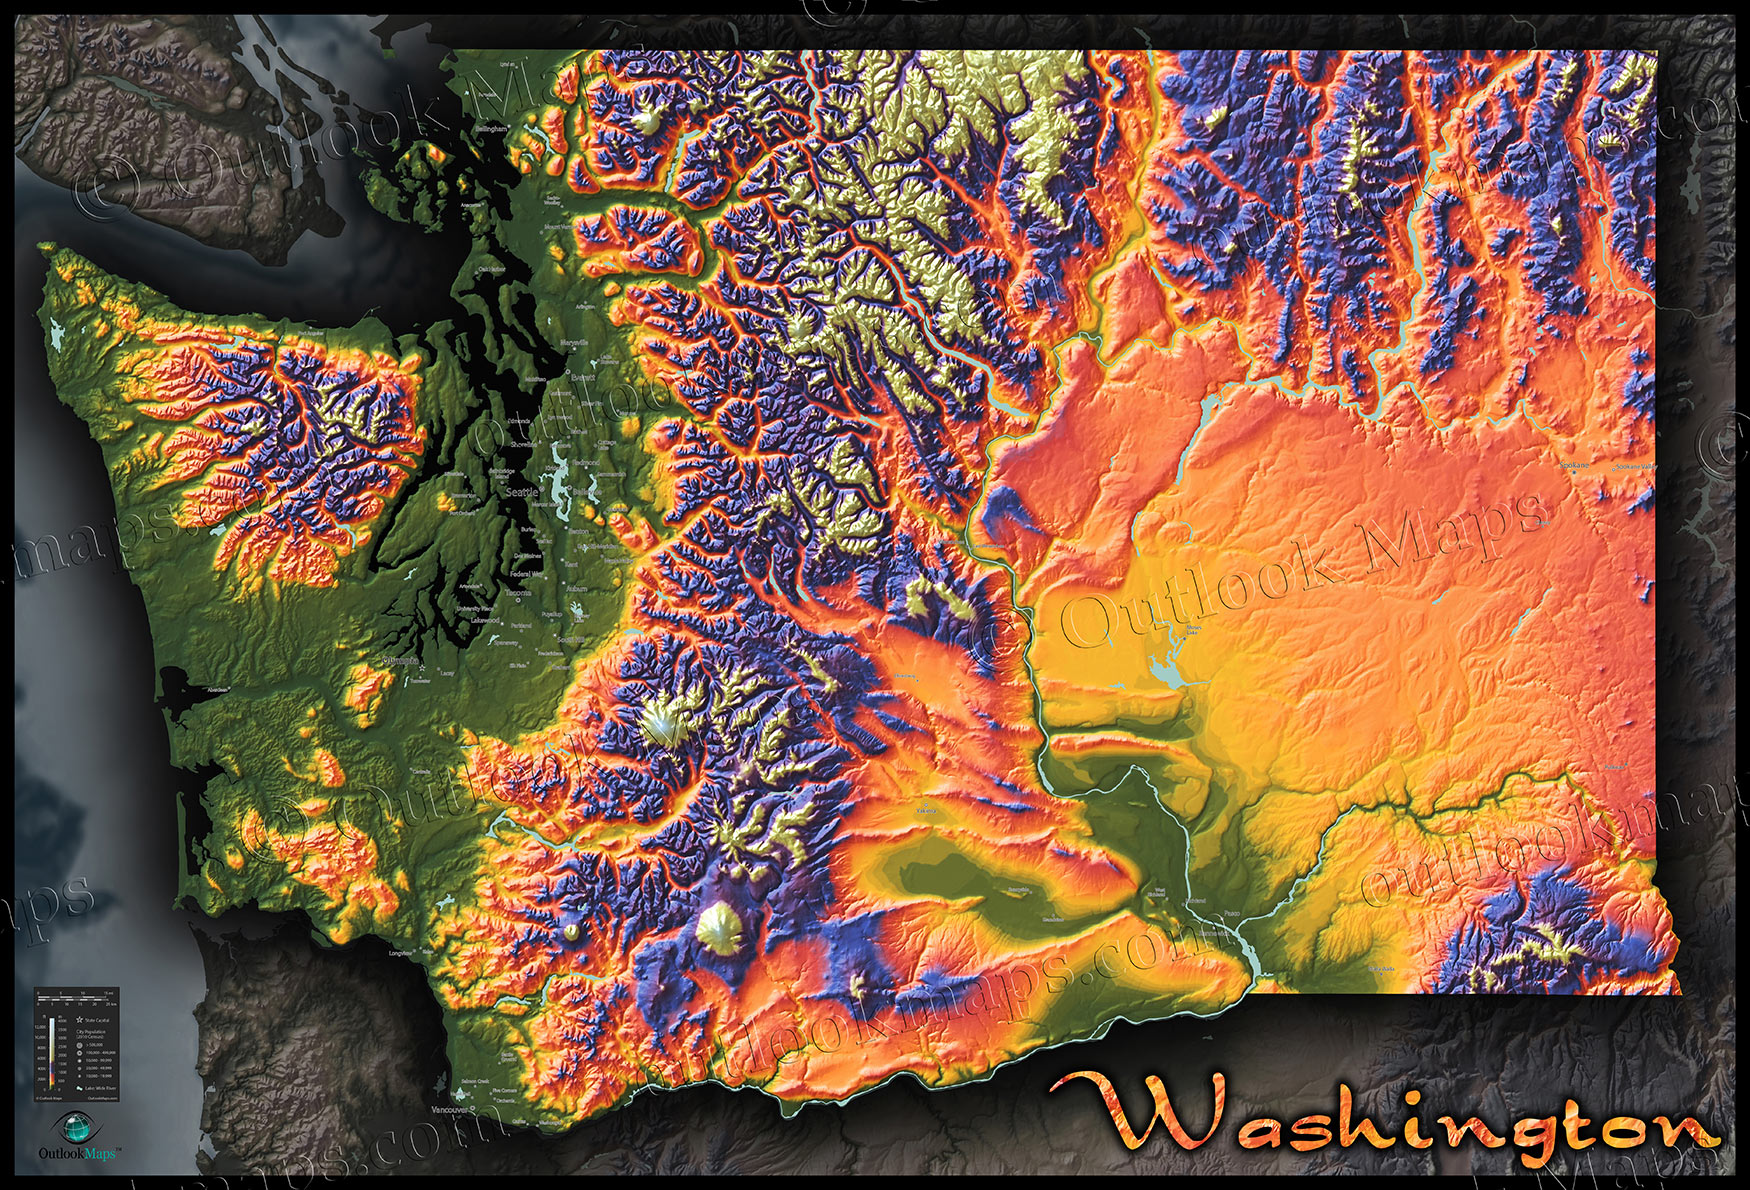 Topo Map of Washington State   Colorful Mountains   Terrain Topographic Physical Wall Map of Washington